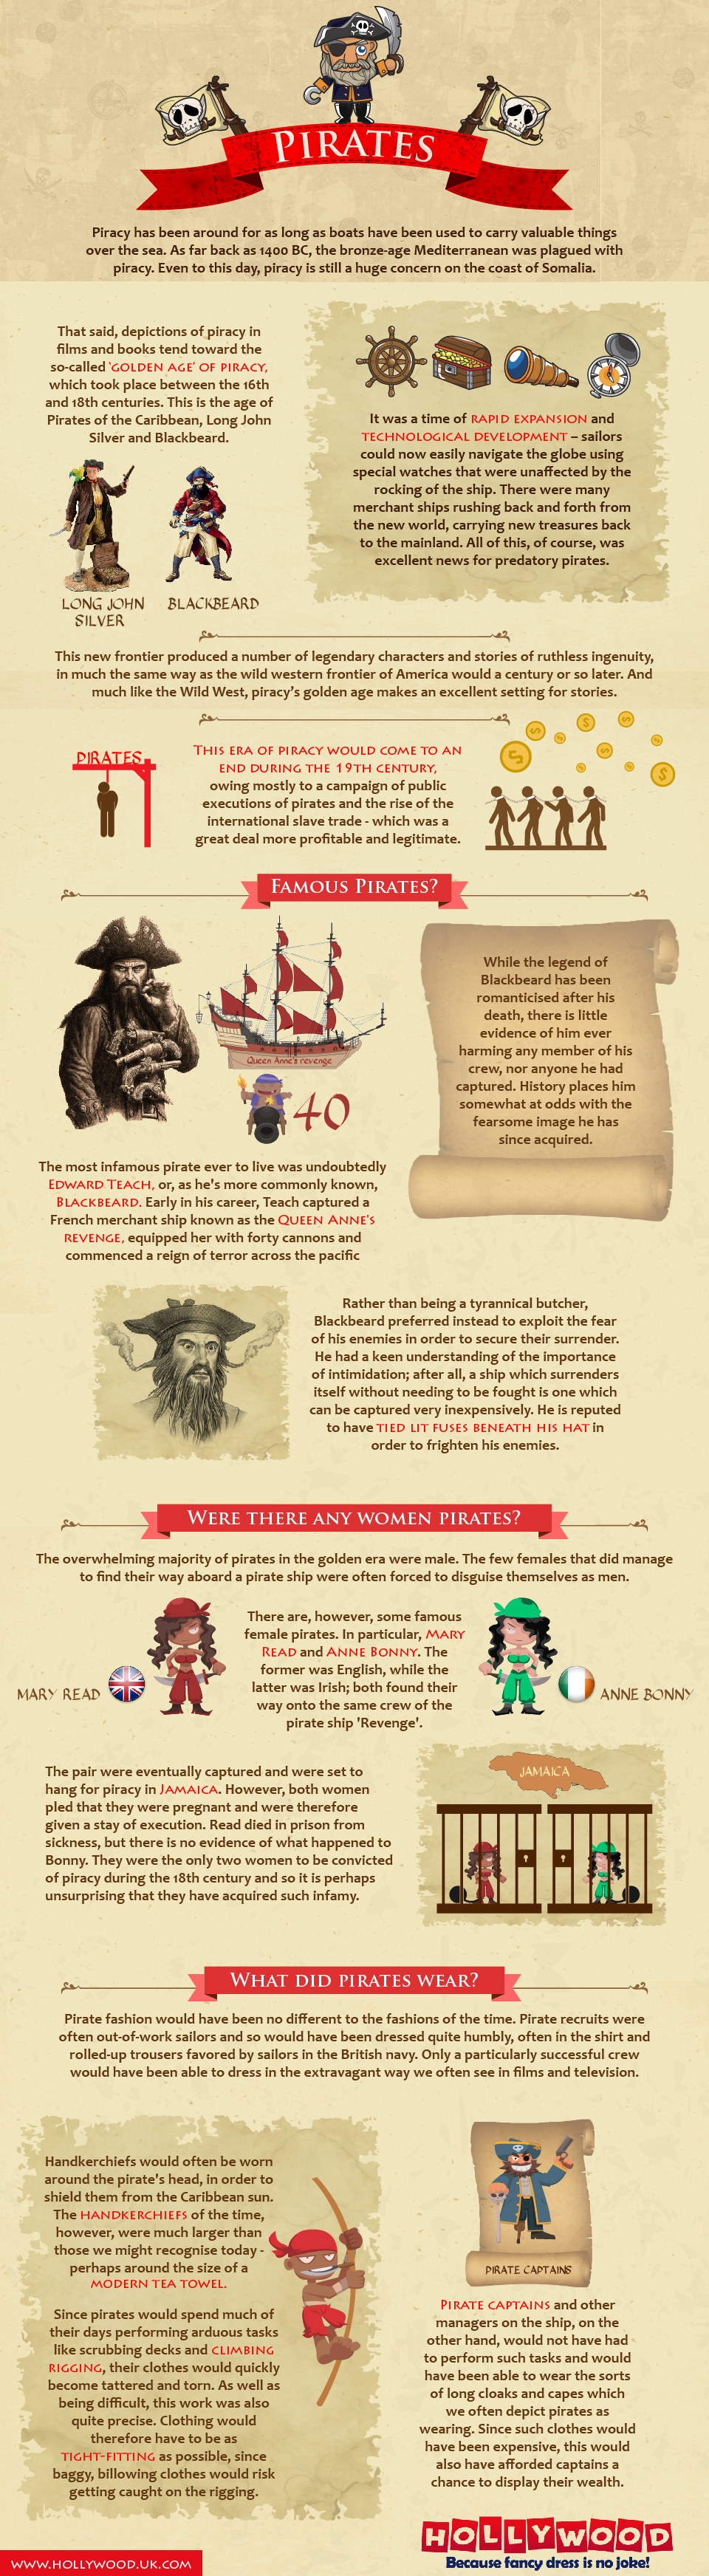 Everything you wanted to know about Pirates